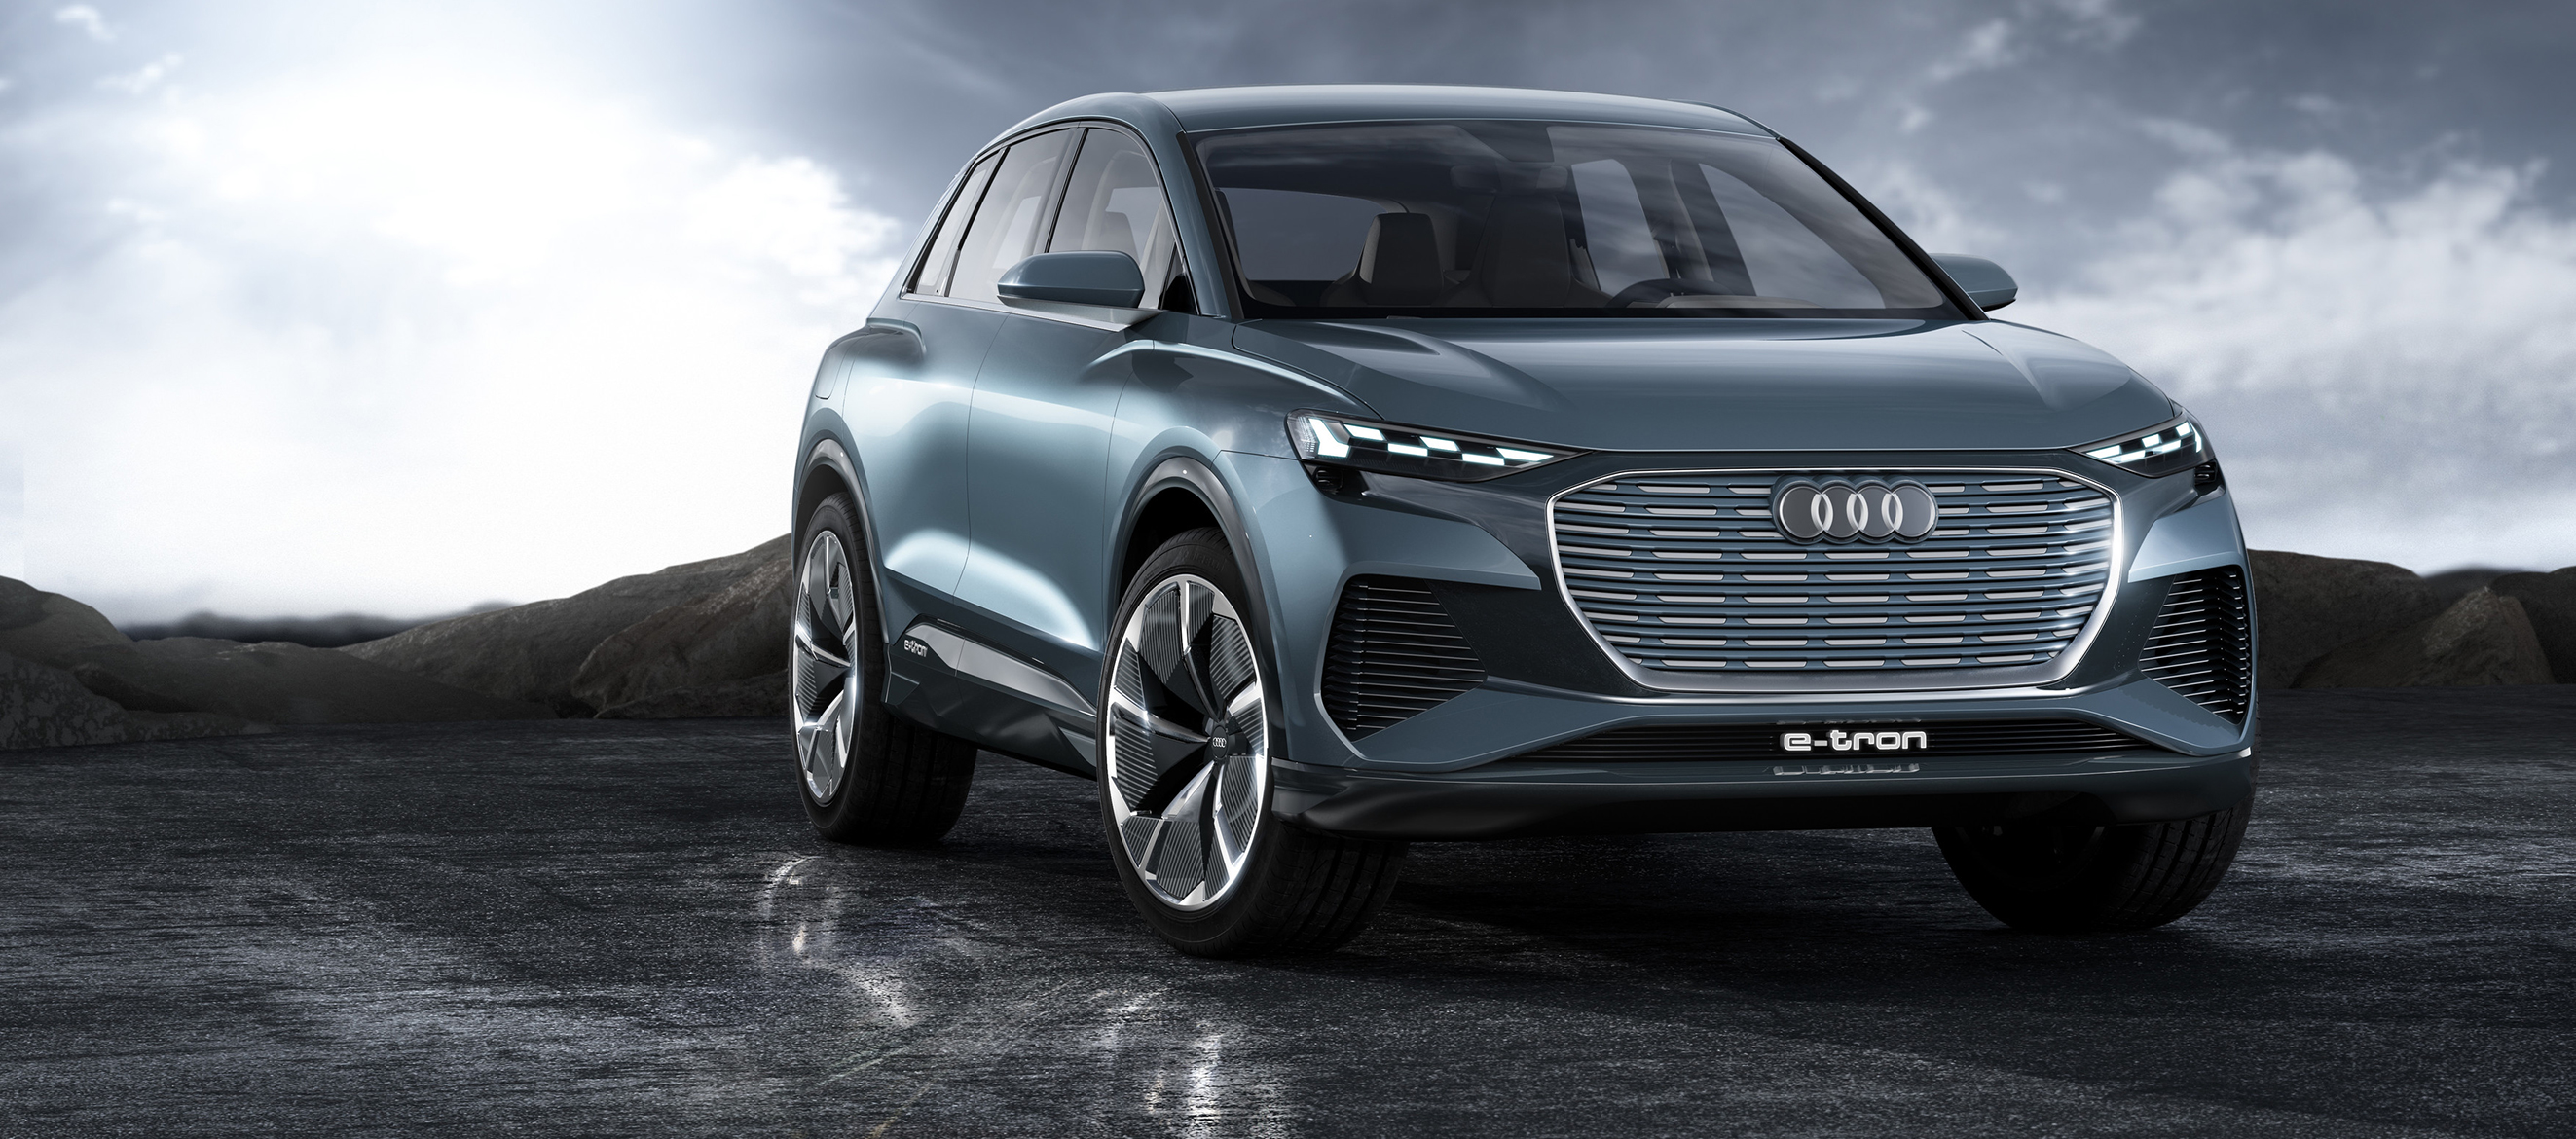 Automobile Barcelona 2019: Audi protagonista indiscutible